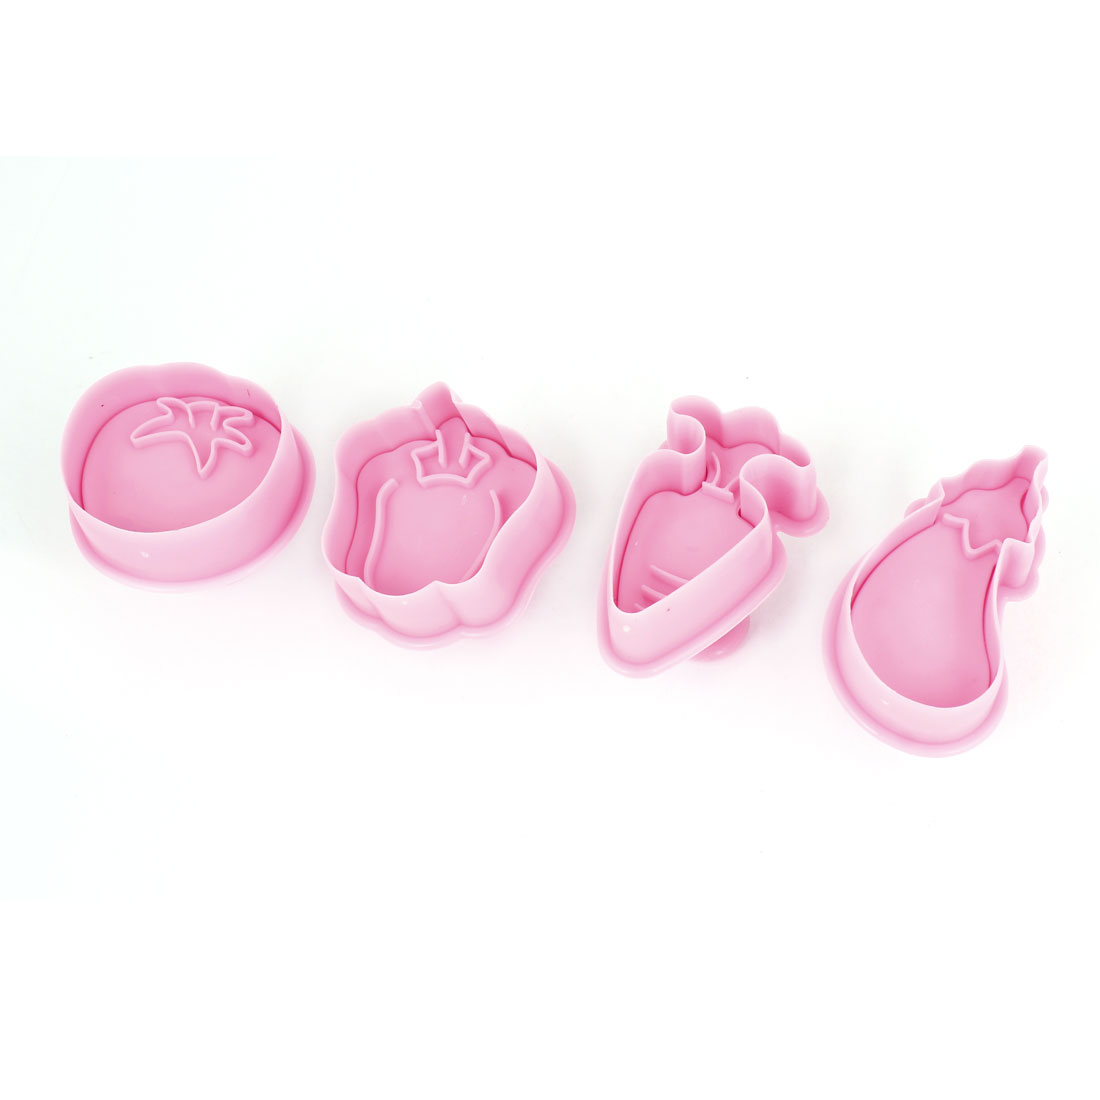 Kitchen Pink Eggplant Carrot Shaped Craft Paste Cake DIY Plunger Cutters 4 Pcs